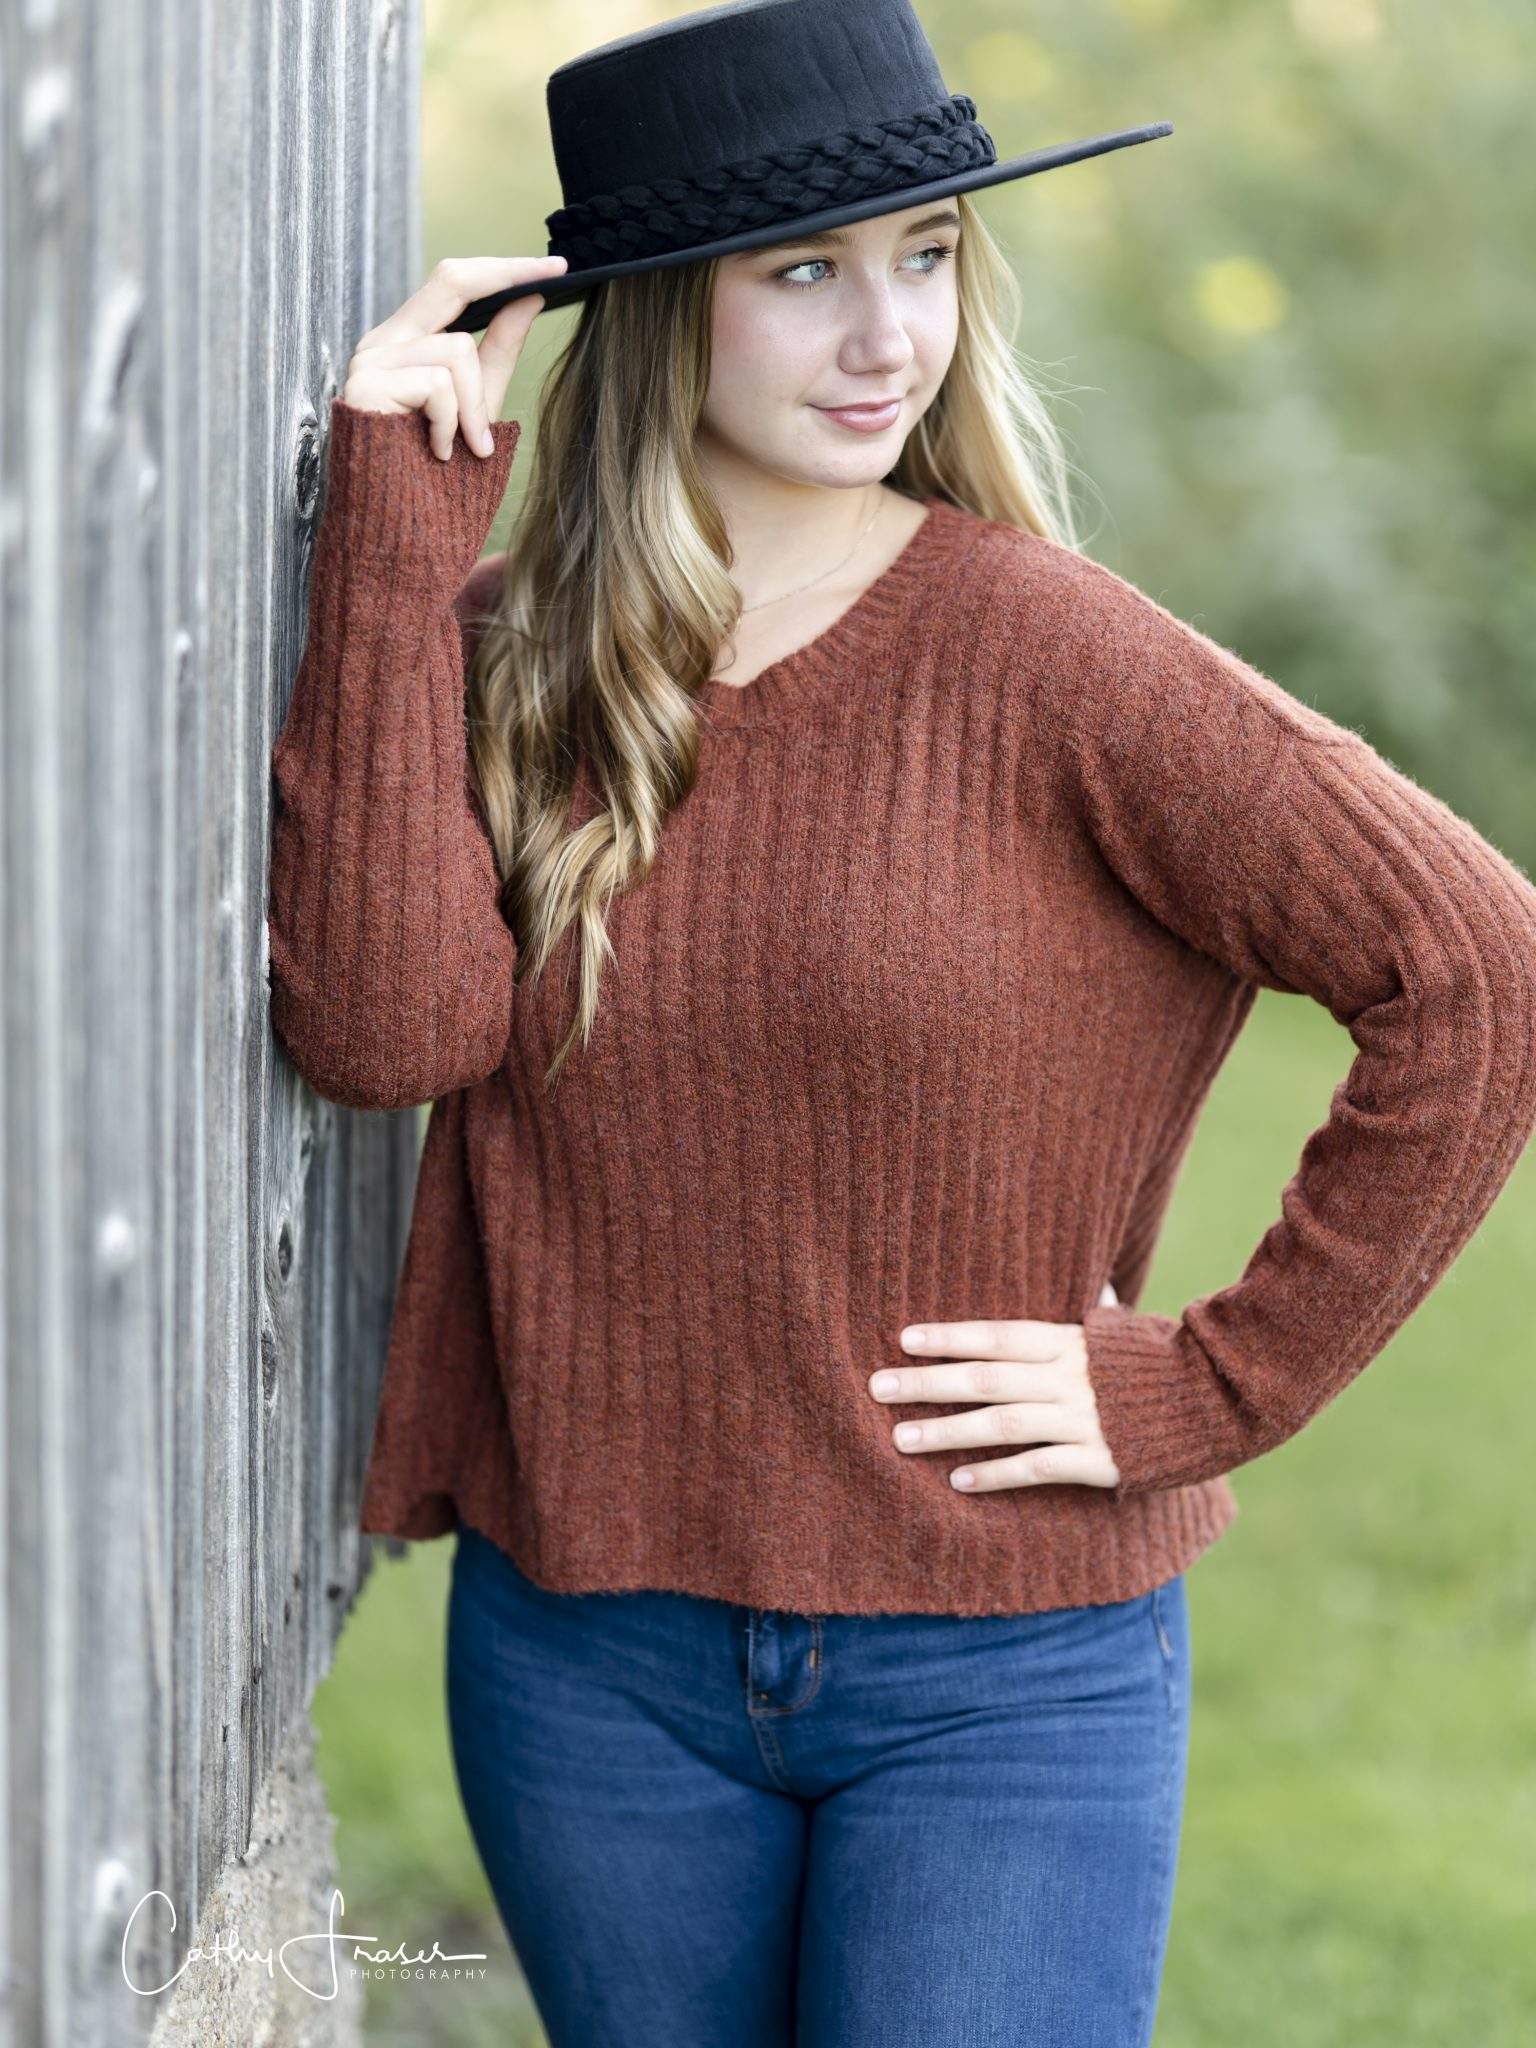 in natural light, girl wearing rust color sweater and a black hat leaning on an old barn